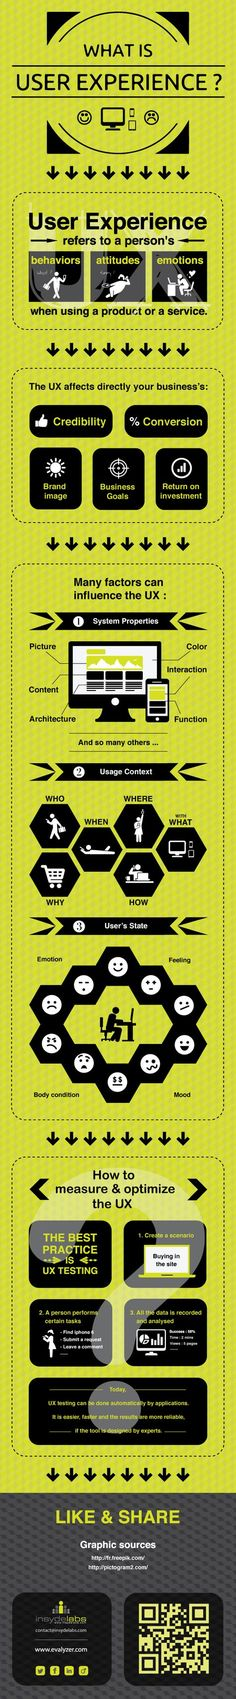 https://social-media-strategy-template.blogspot.com/ What is User Experience (UX) ? #UX #webdesign